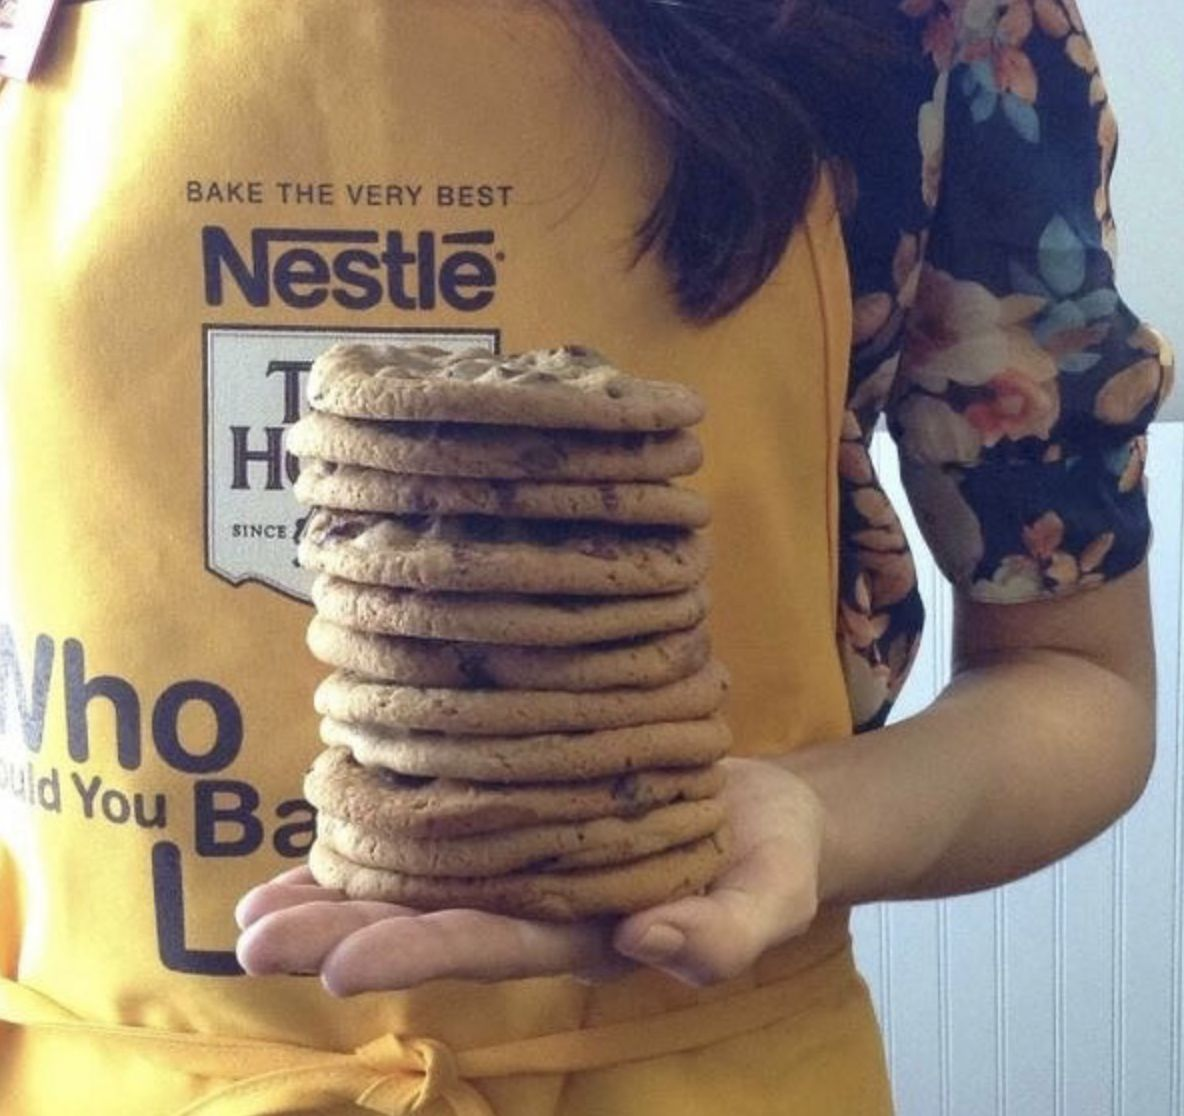 Get Ready, Nestlé Toll House Café By Chip is About to Break a GUINNESS WORLD RECORDS Title!